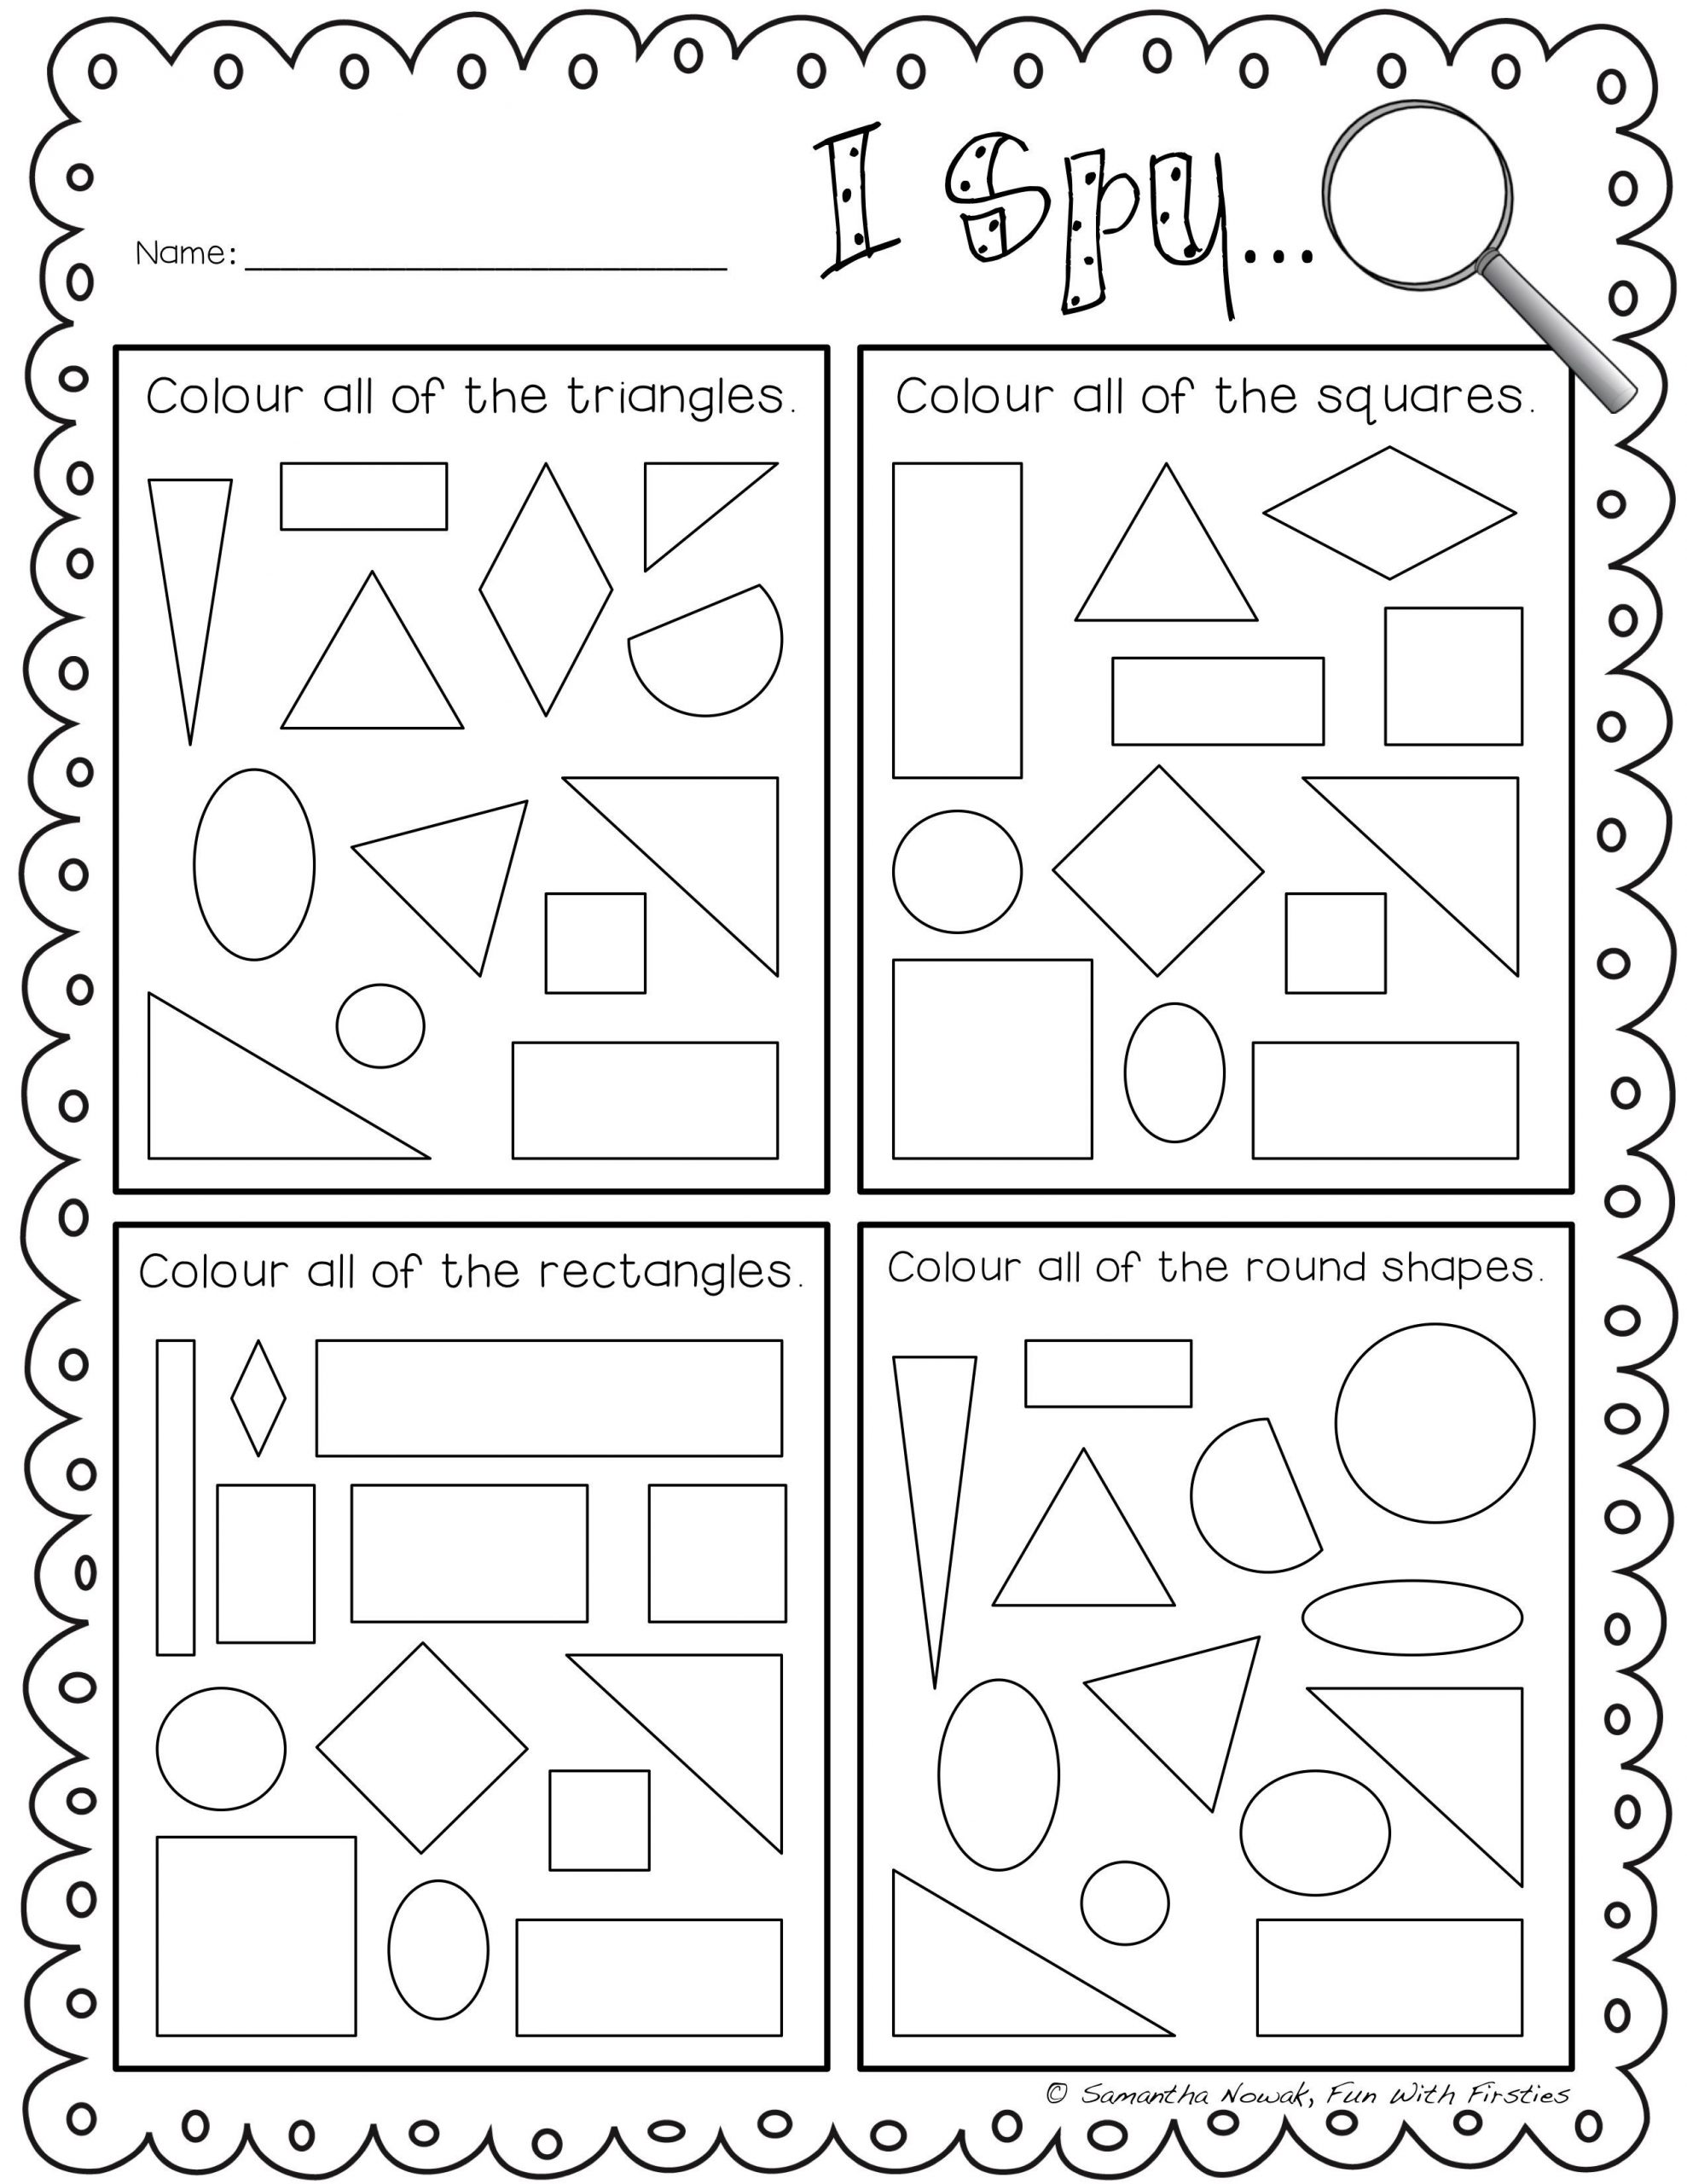 Polygon Worksheets for 2nd Grade I Spy 2d Geometry Shapes Lour to Practice Identifying